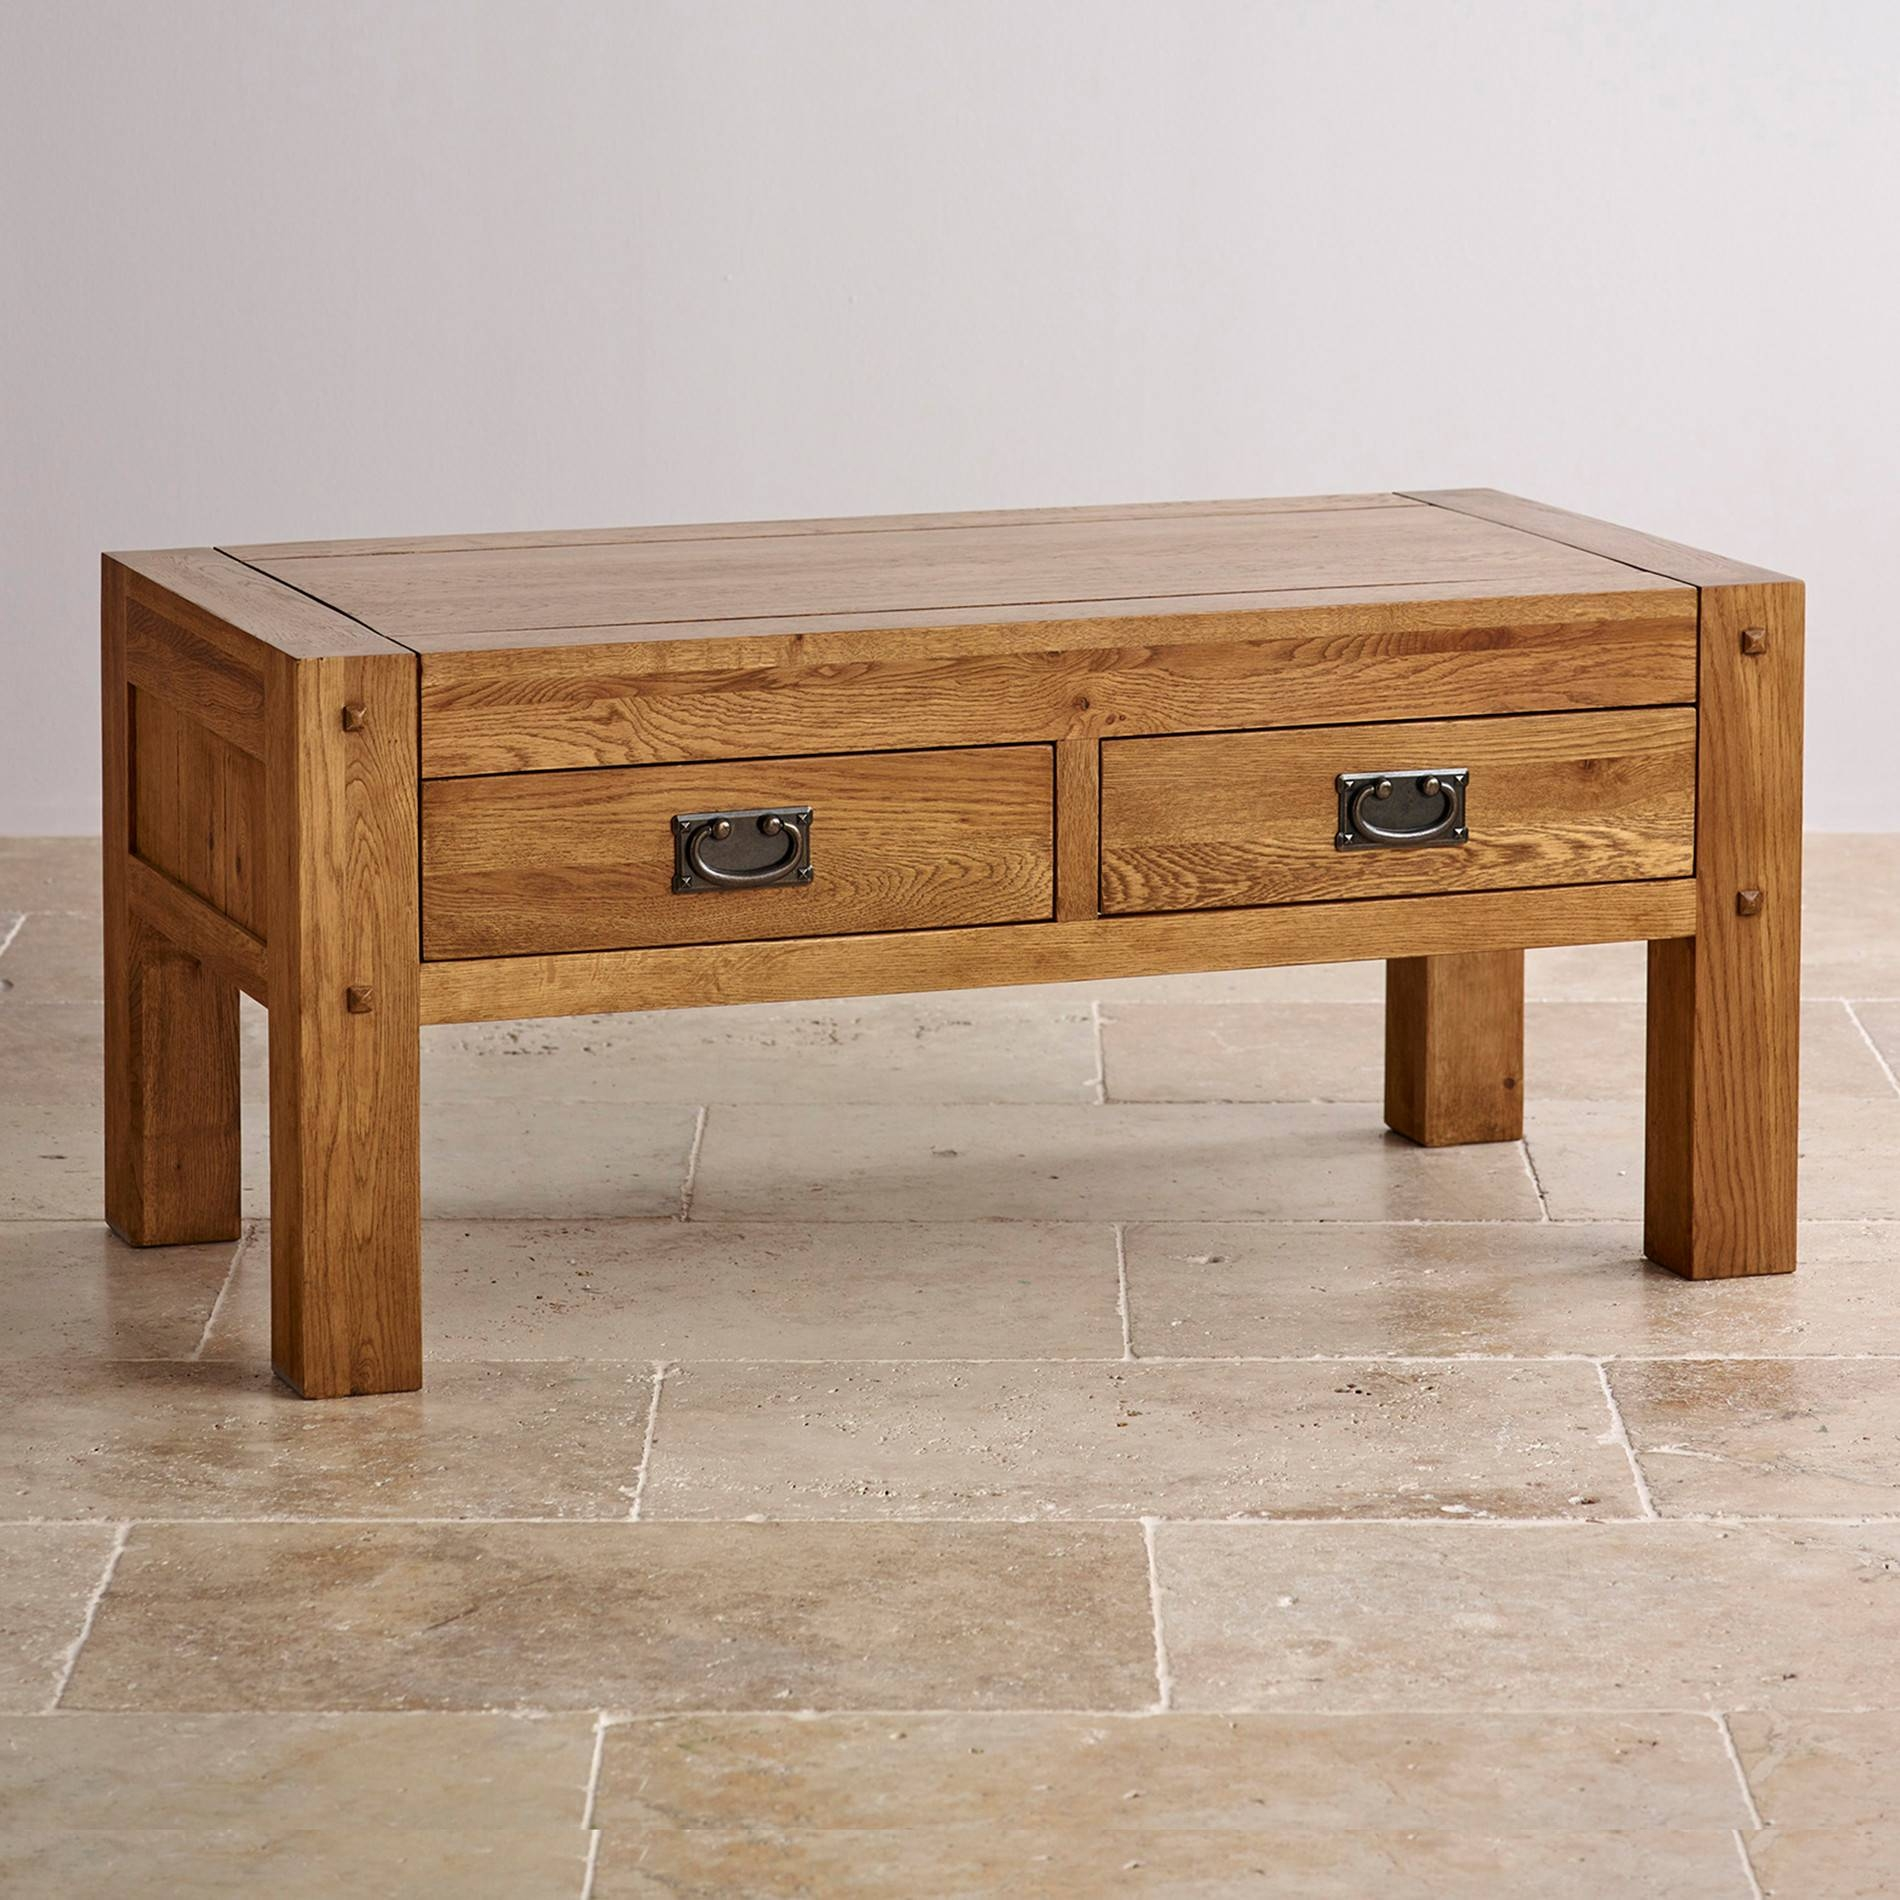 Quercus Coffee Table | Rustic Solid Oak | Oak Furniture Land In Oak Coffee Table With Storage (View 11 of 15)